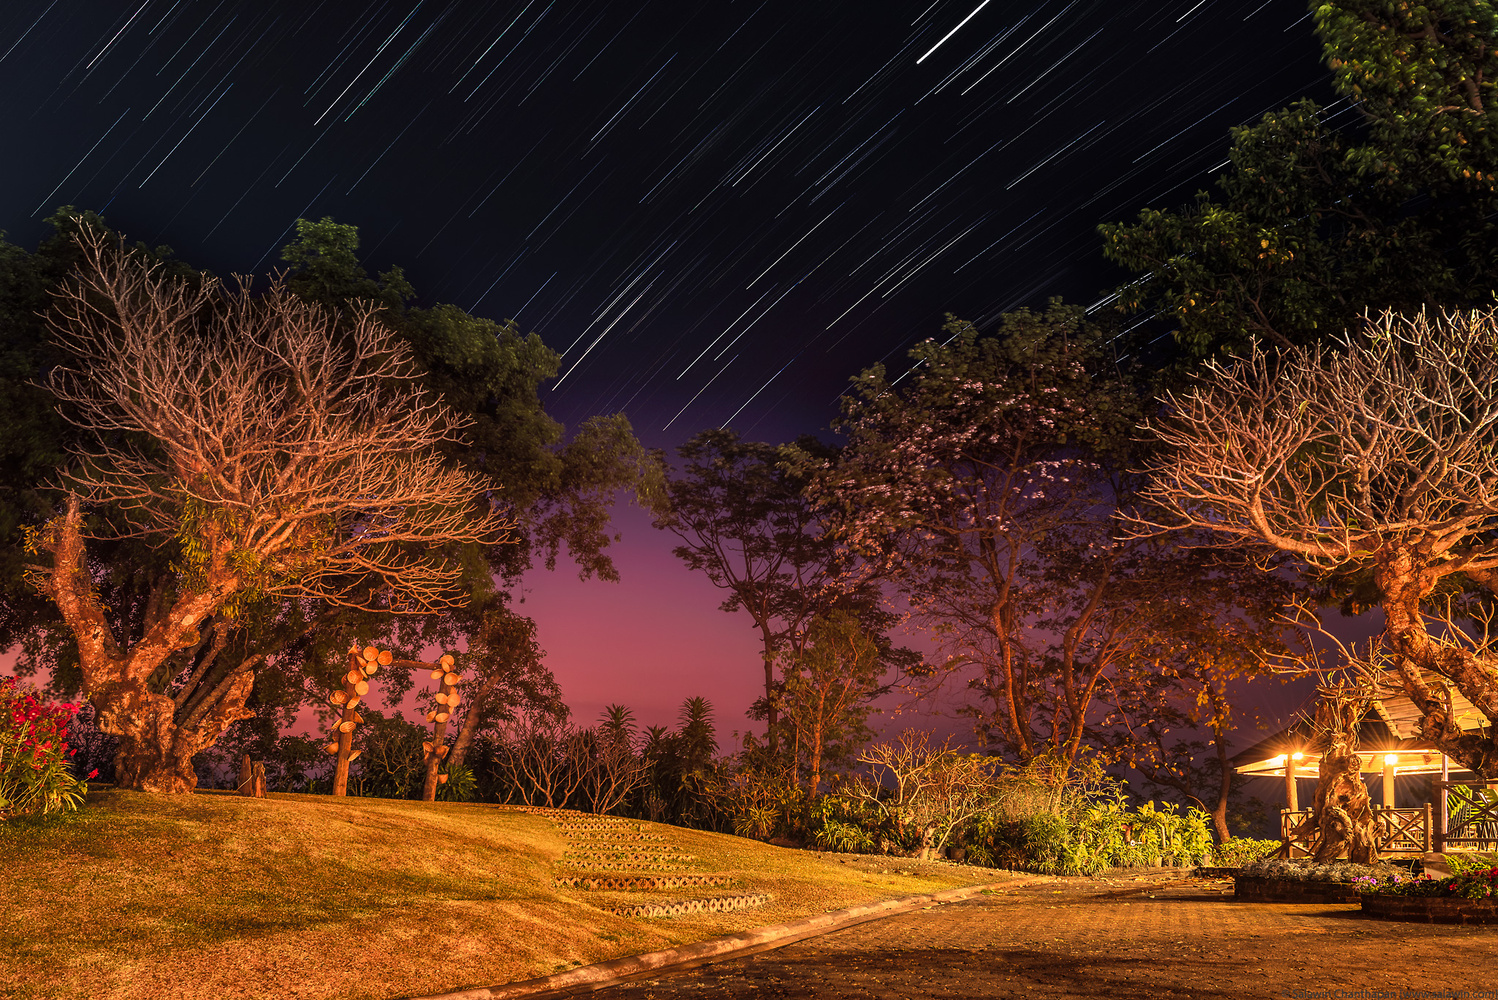 Star trails at twilight by Salawin Chanthapan